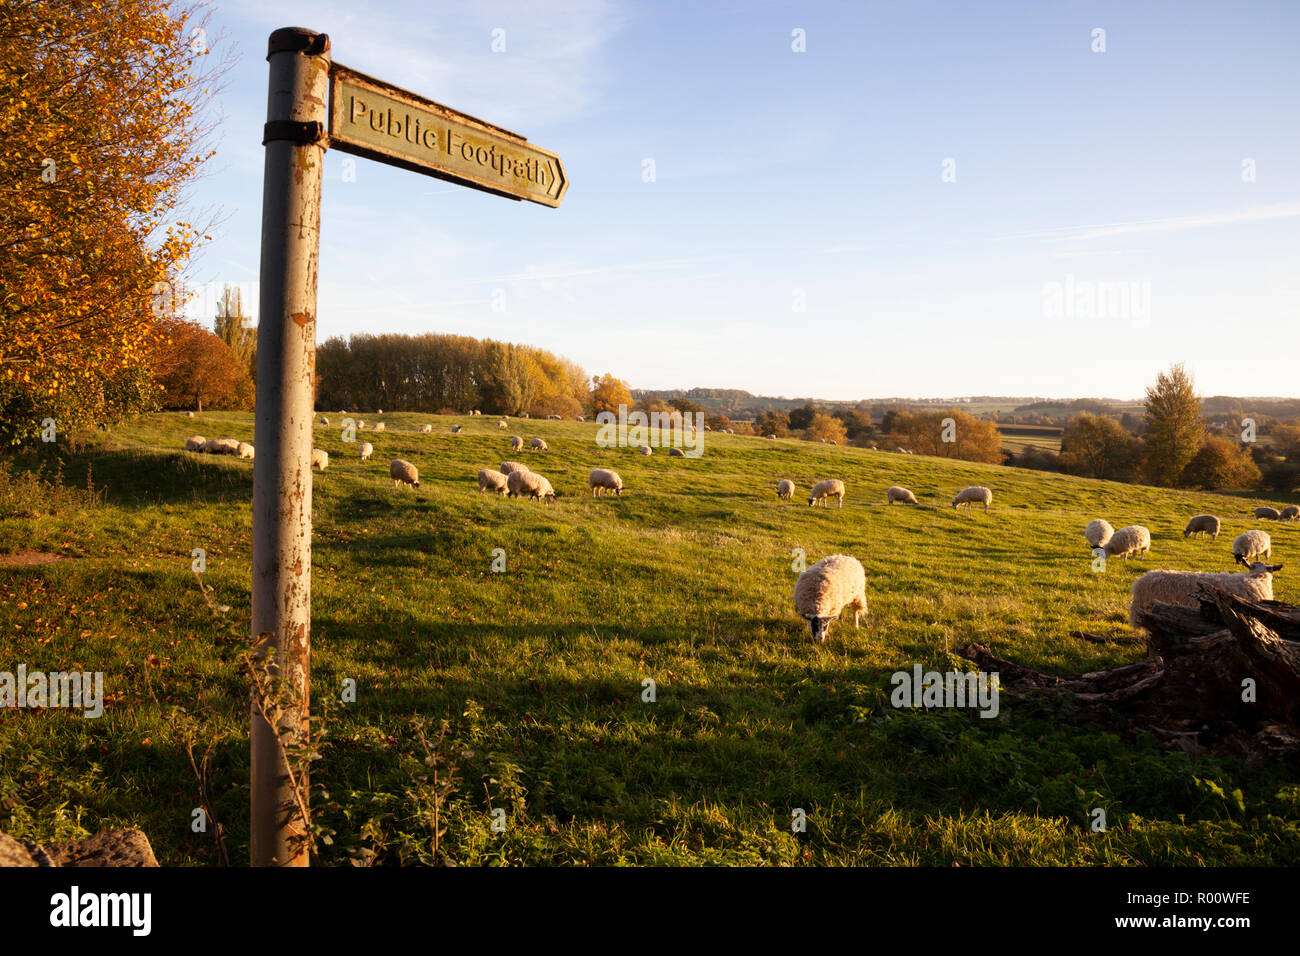 Public footpath running across the Coneygree field filled with grazing sheep at sunset, Chipping Campden, Cotswolds, Gloucestershire, England, UK - Stock Image